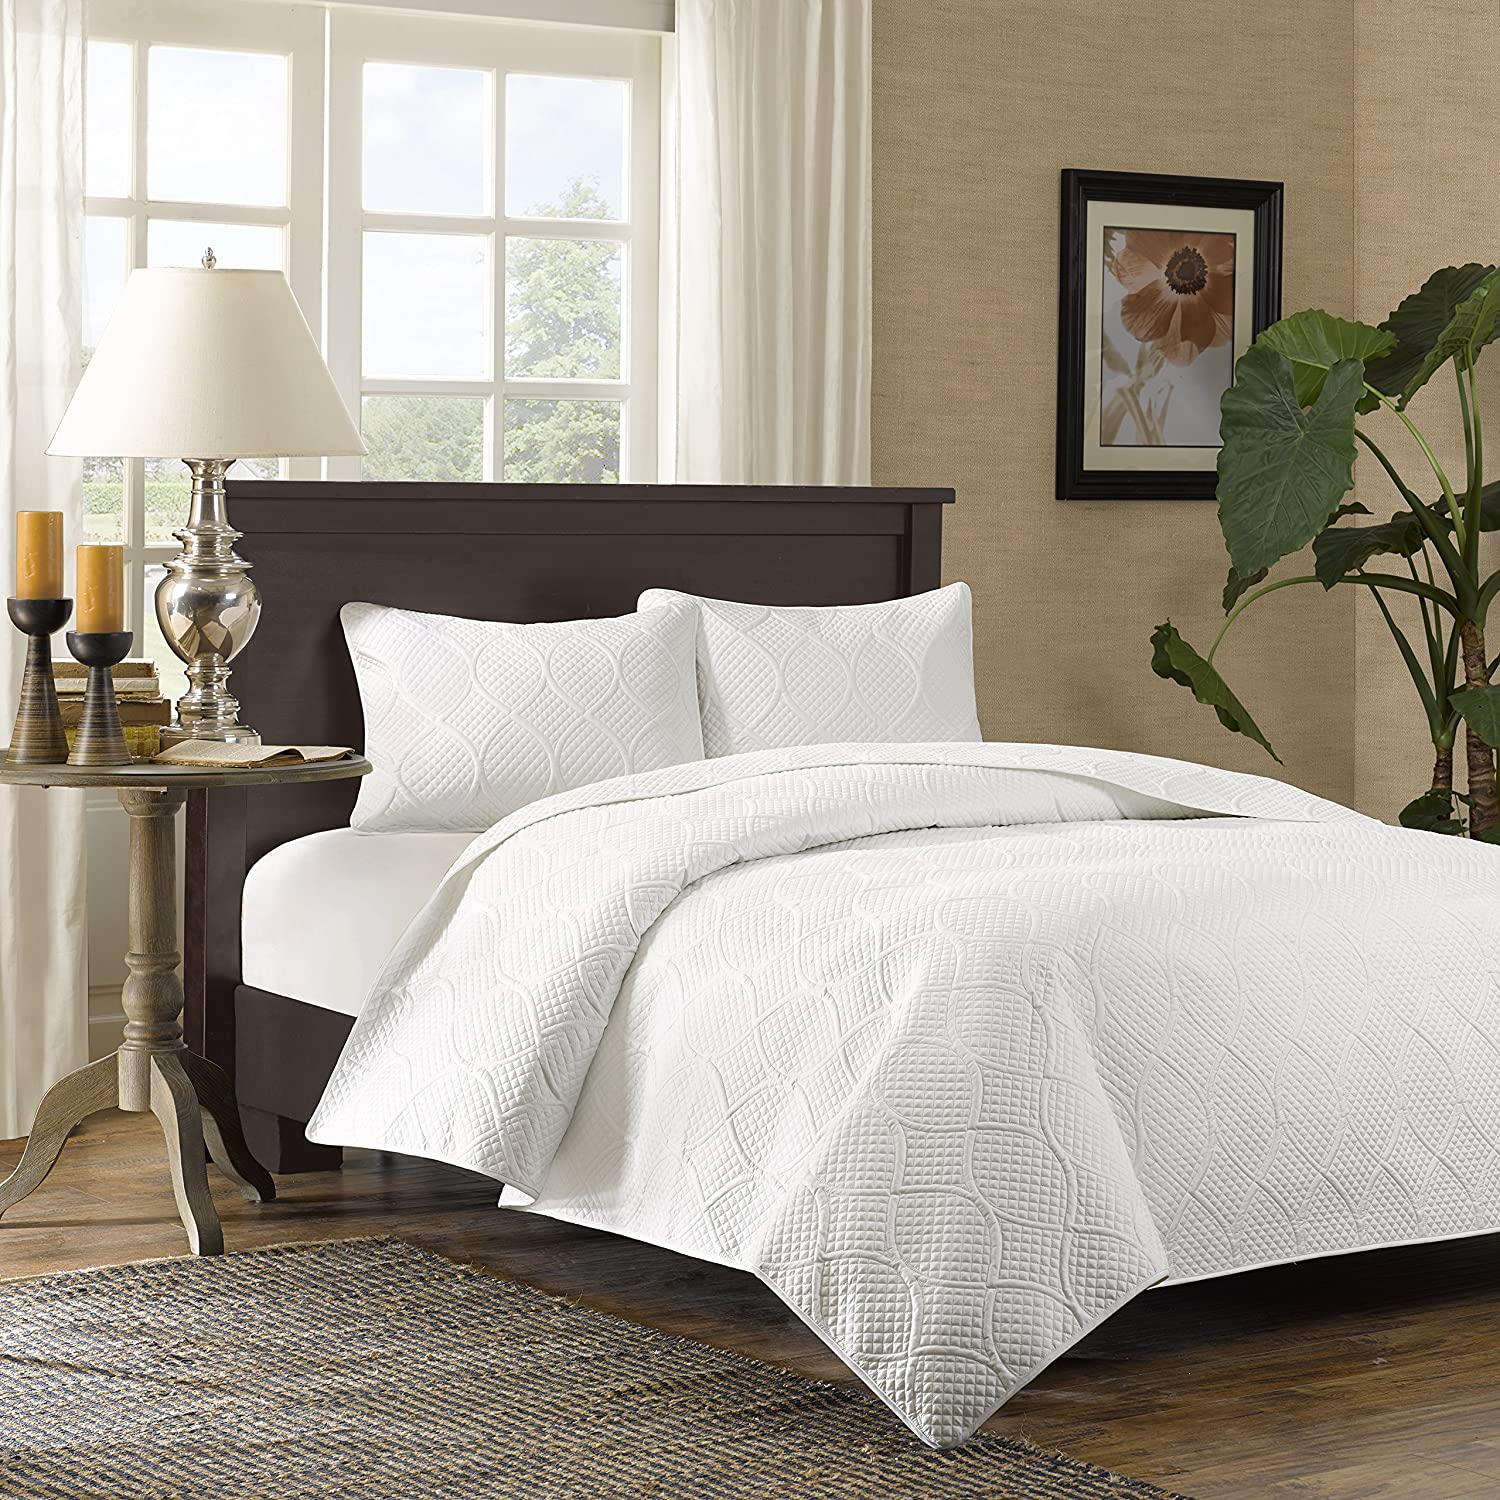 piece pinterest set duvet king california maureen products comforter pin